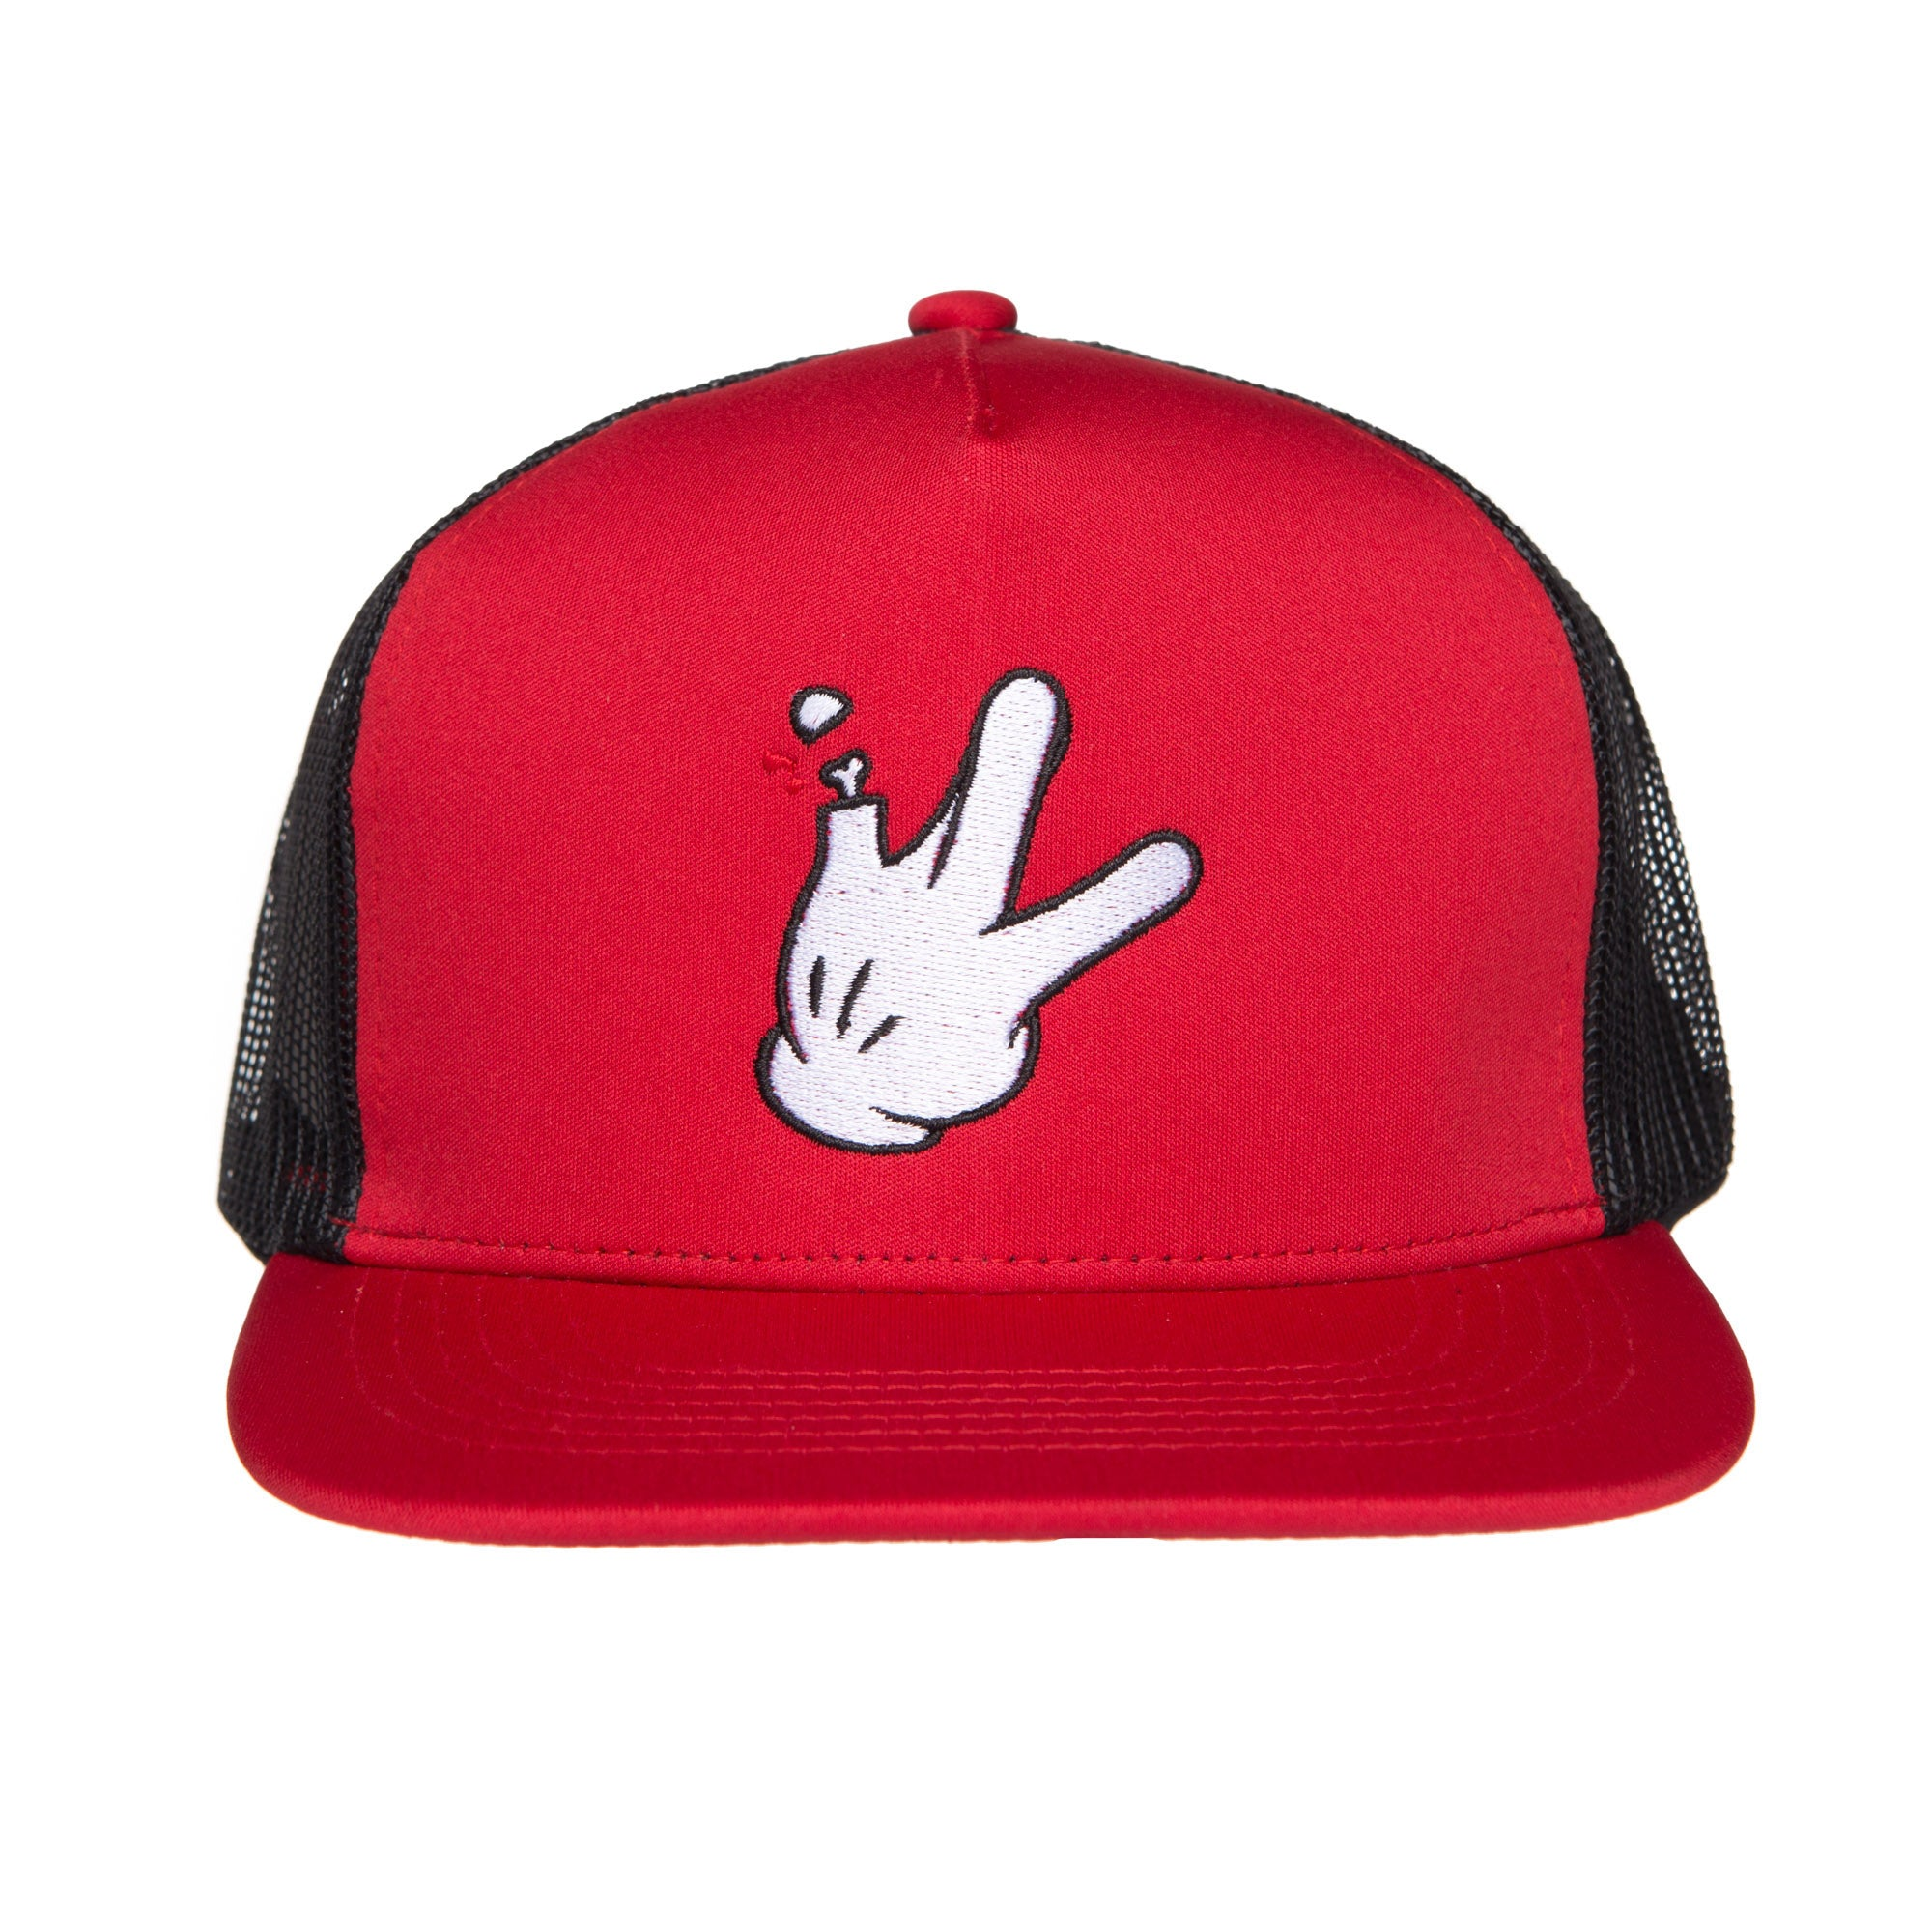 "5 Panel Red/Black Mesh Flatbill RaceKraft ""Glove"" Trucker Hat"